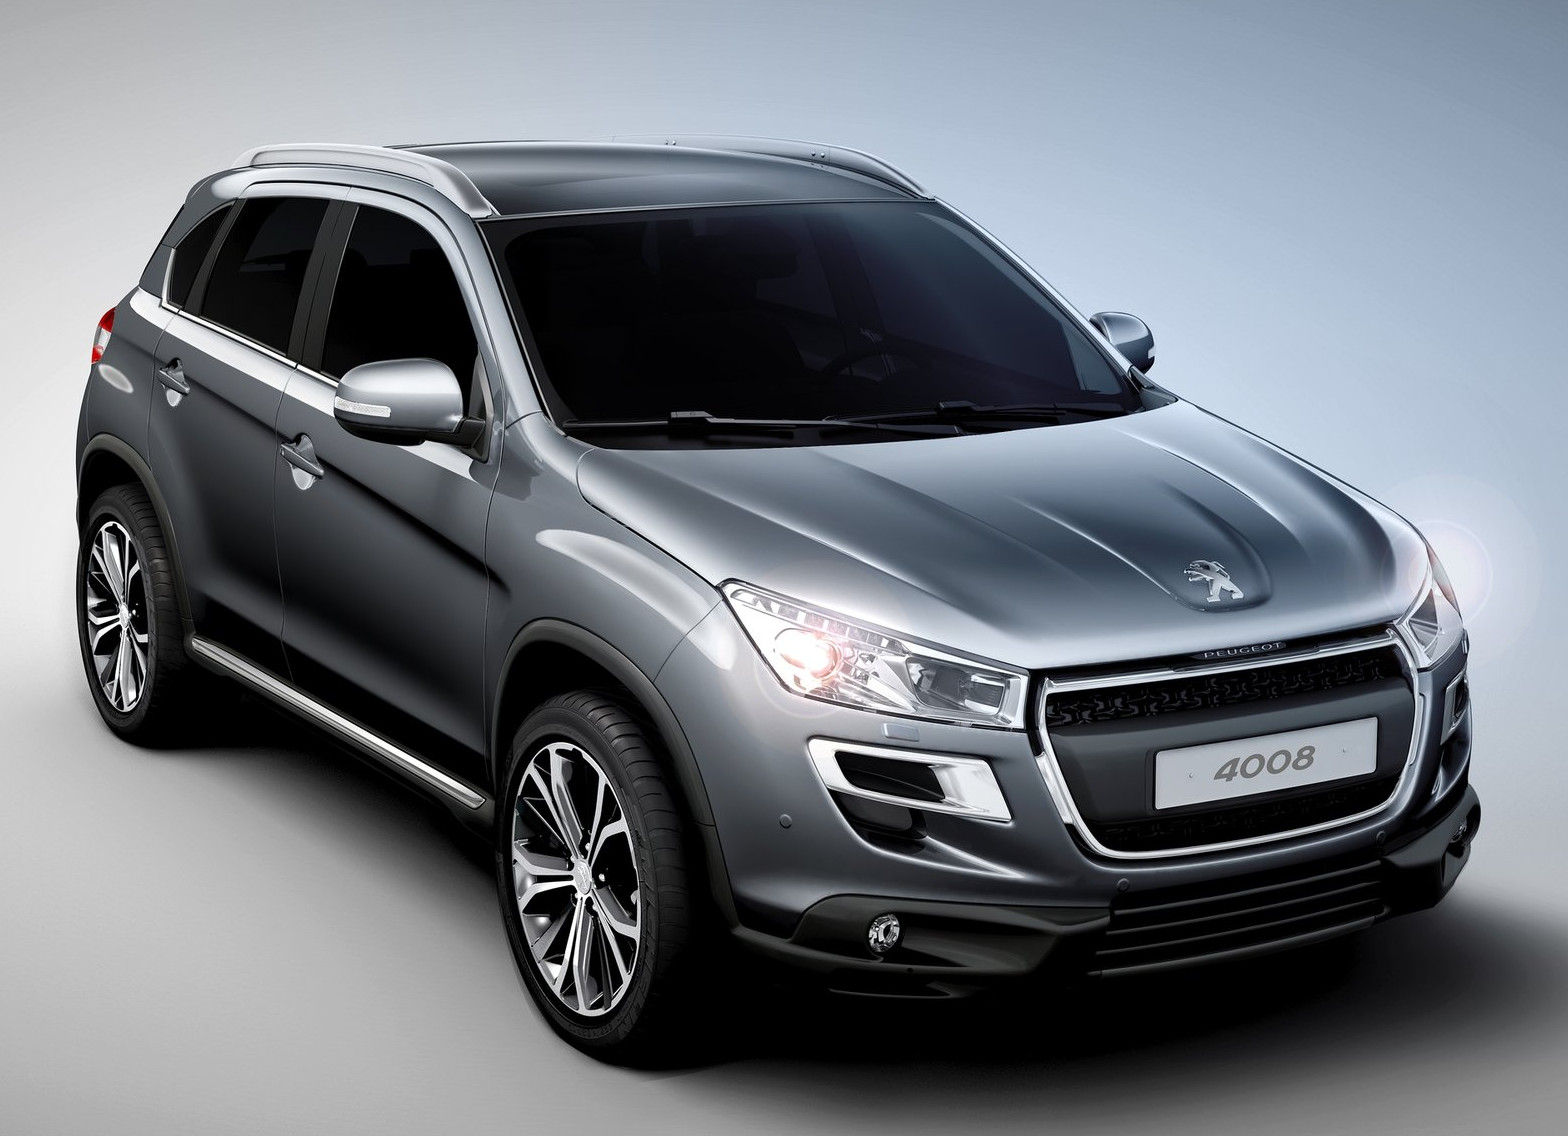 2012 peugeot 4008 crossover revealed to debut in geneva autoevolution. Black Bedroom Furniture Sets. Home Design Ideas